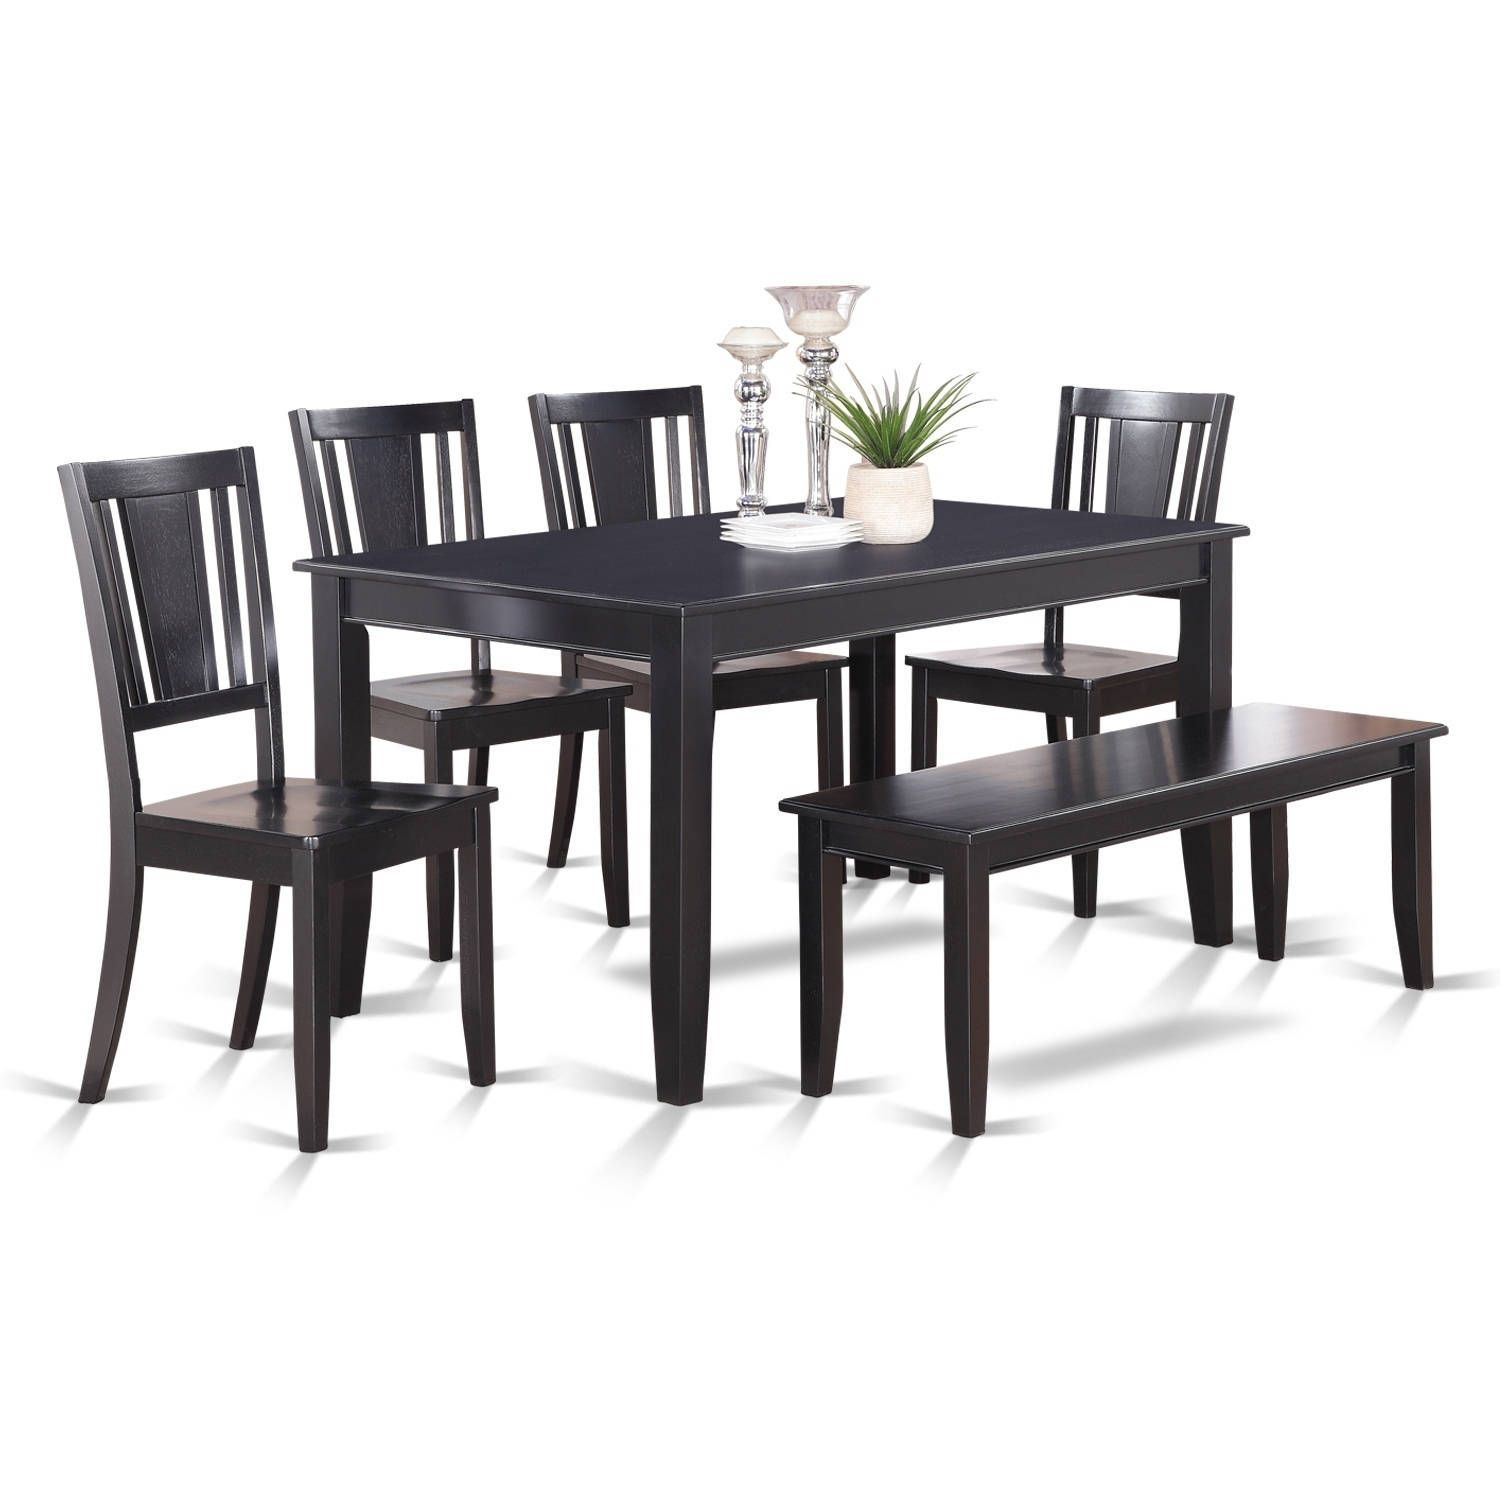 DULE6-BLK 6 Pc Kitchen Table- Table and 4 Kitchen Chairs and Bench ...